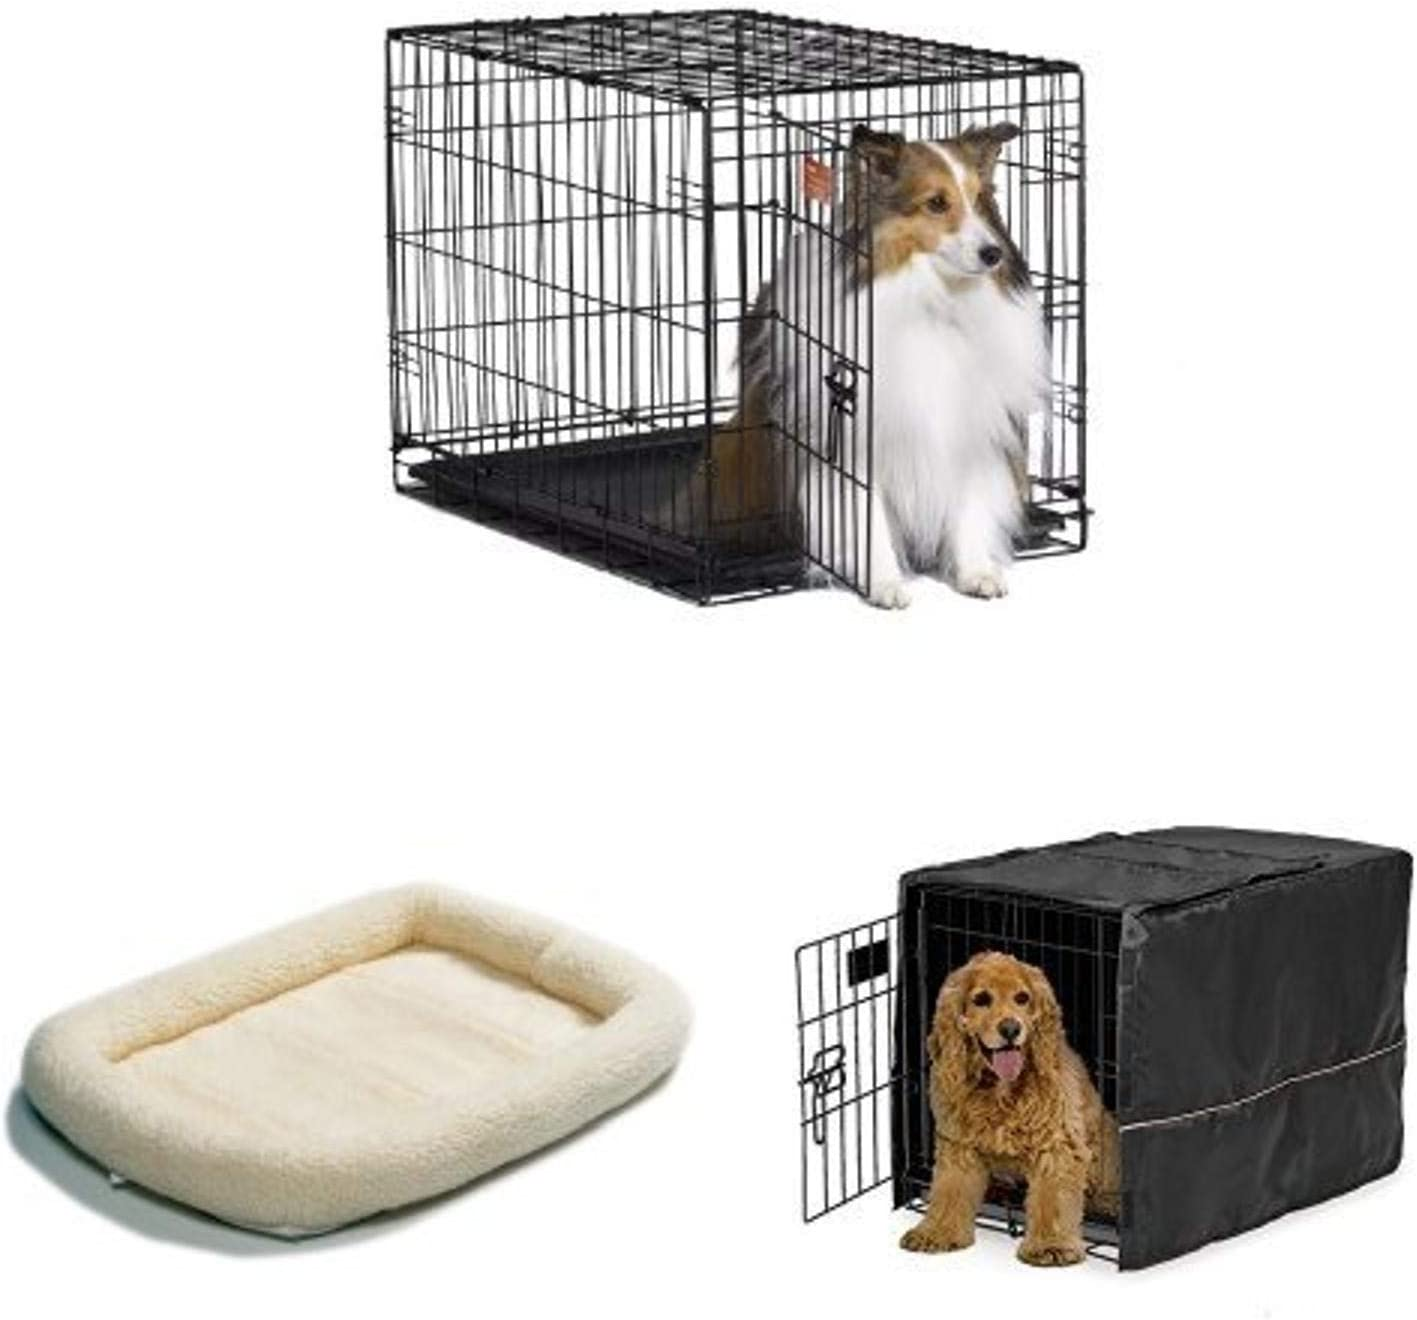 30-Inch Single Door iCrate with Fleece Bed and Cover